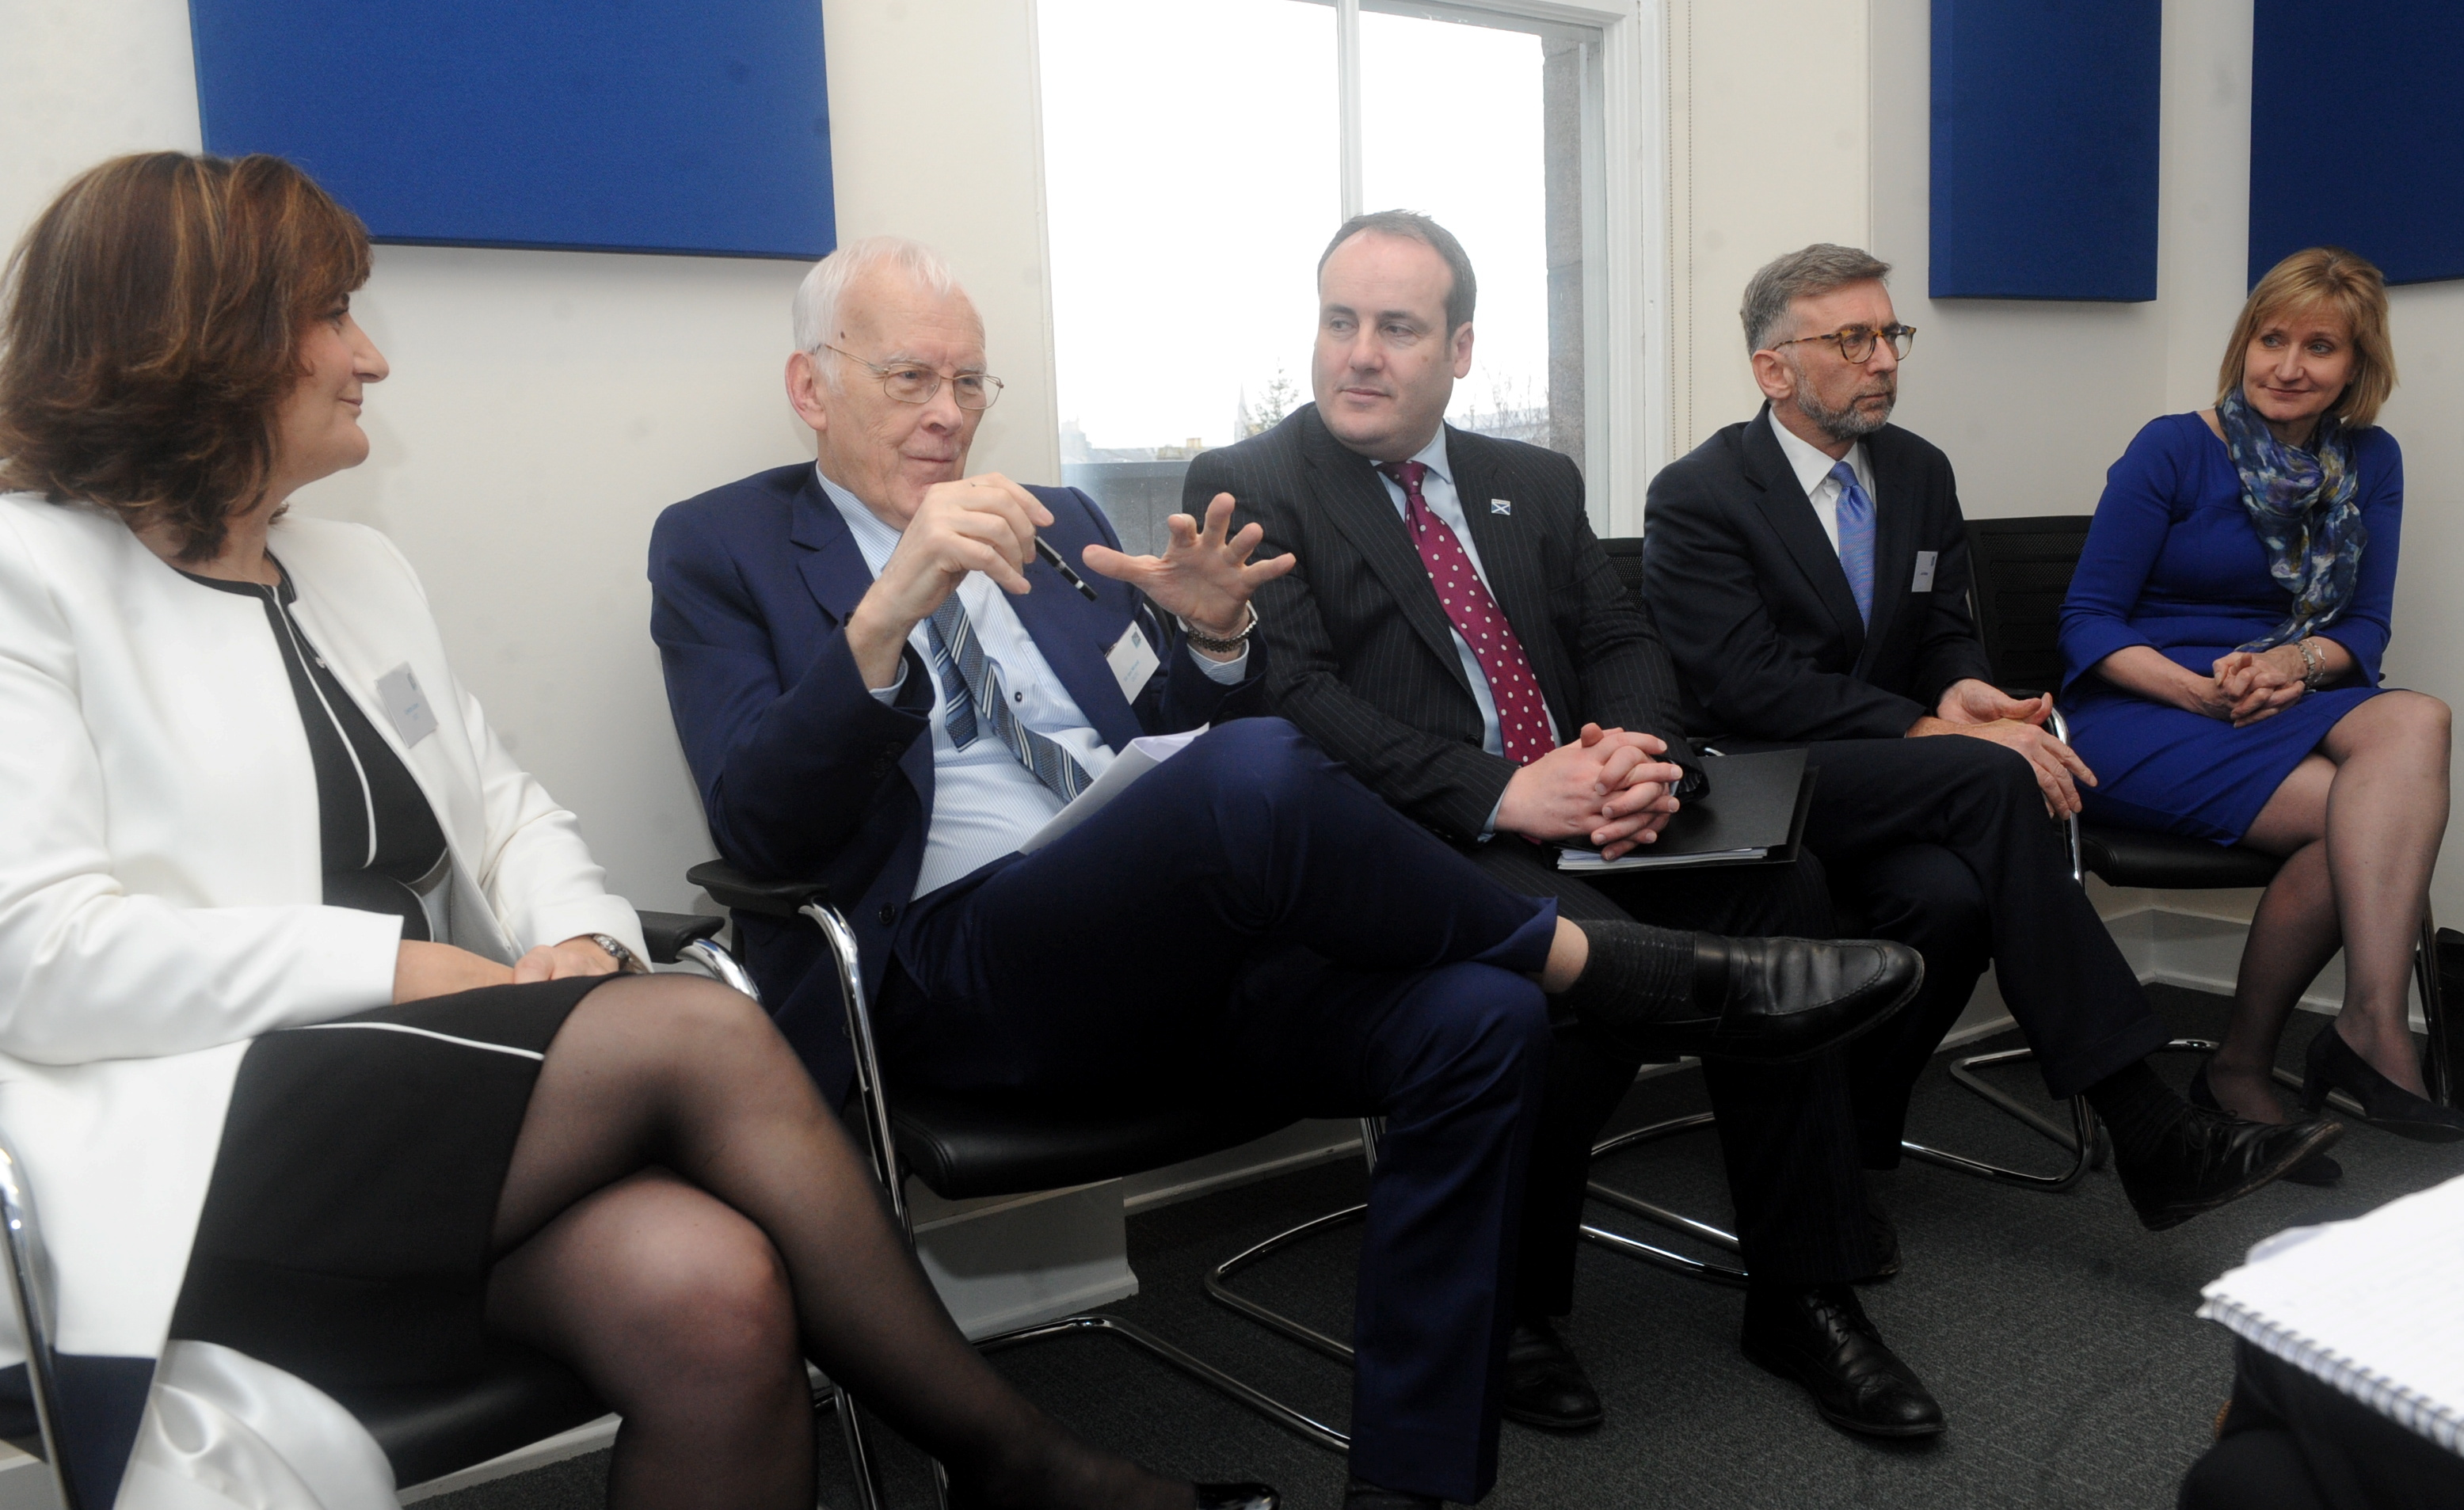 From left, chief executive officer of the centre Colette Cohen, chairman of the centre Sir Ian Wood, and Paul Whitehouse MSP.